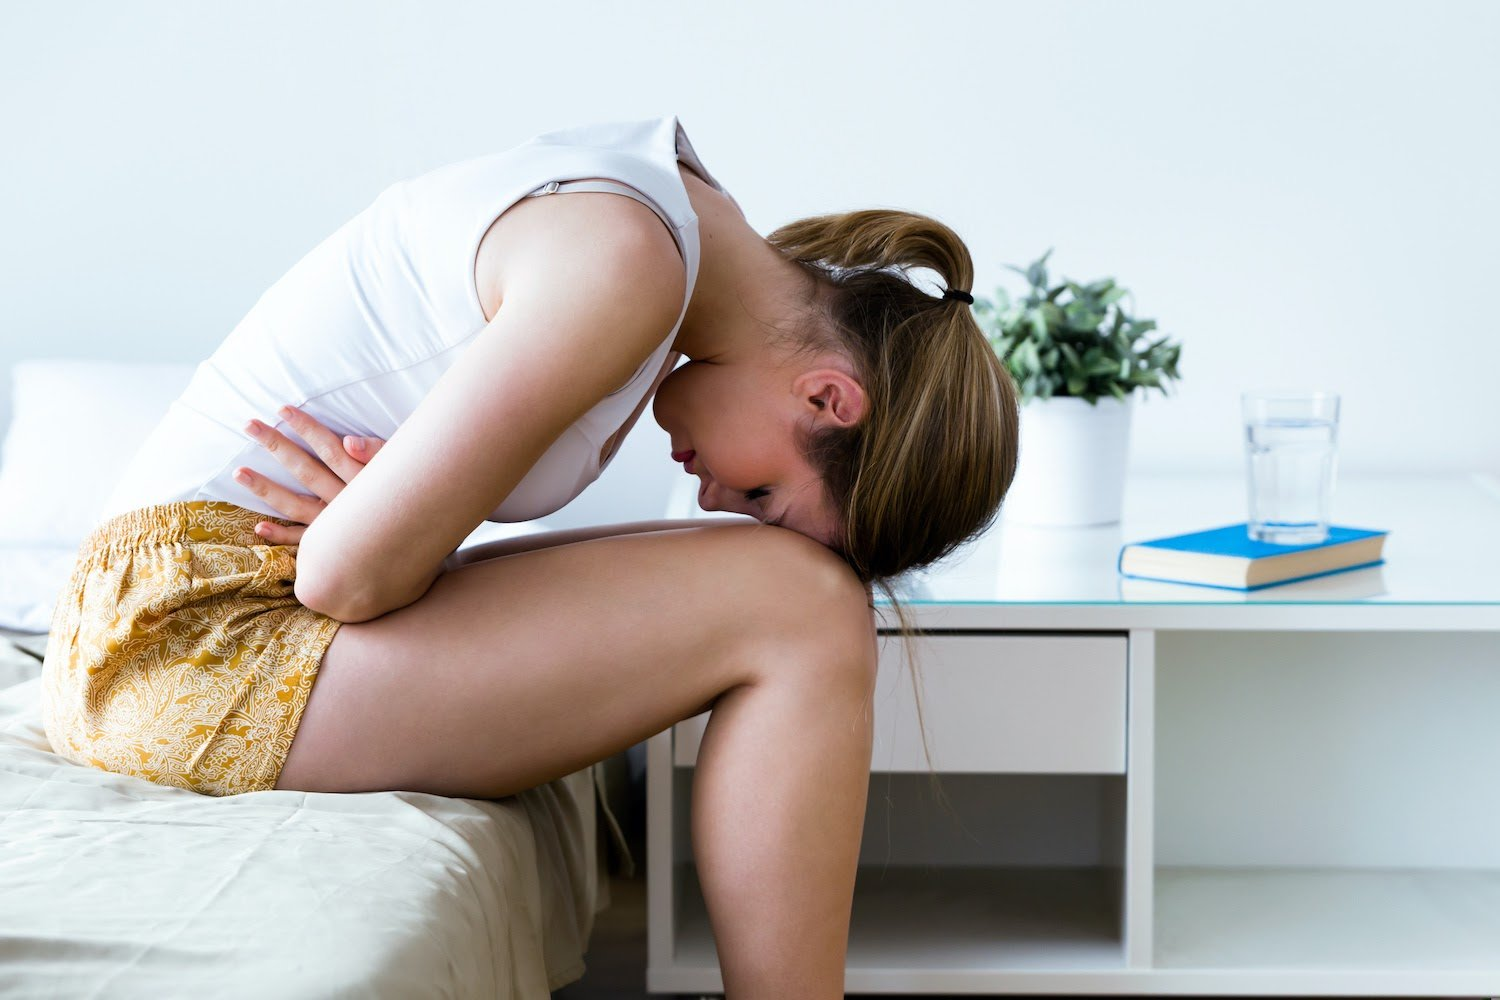 IBS probiotics: A woman doubled over from stomach pain